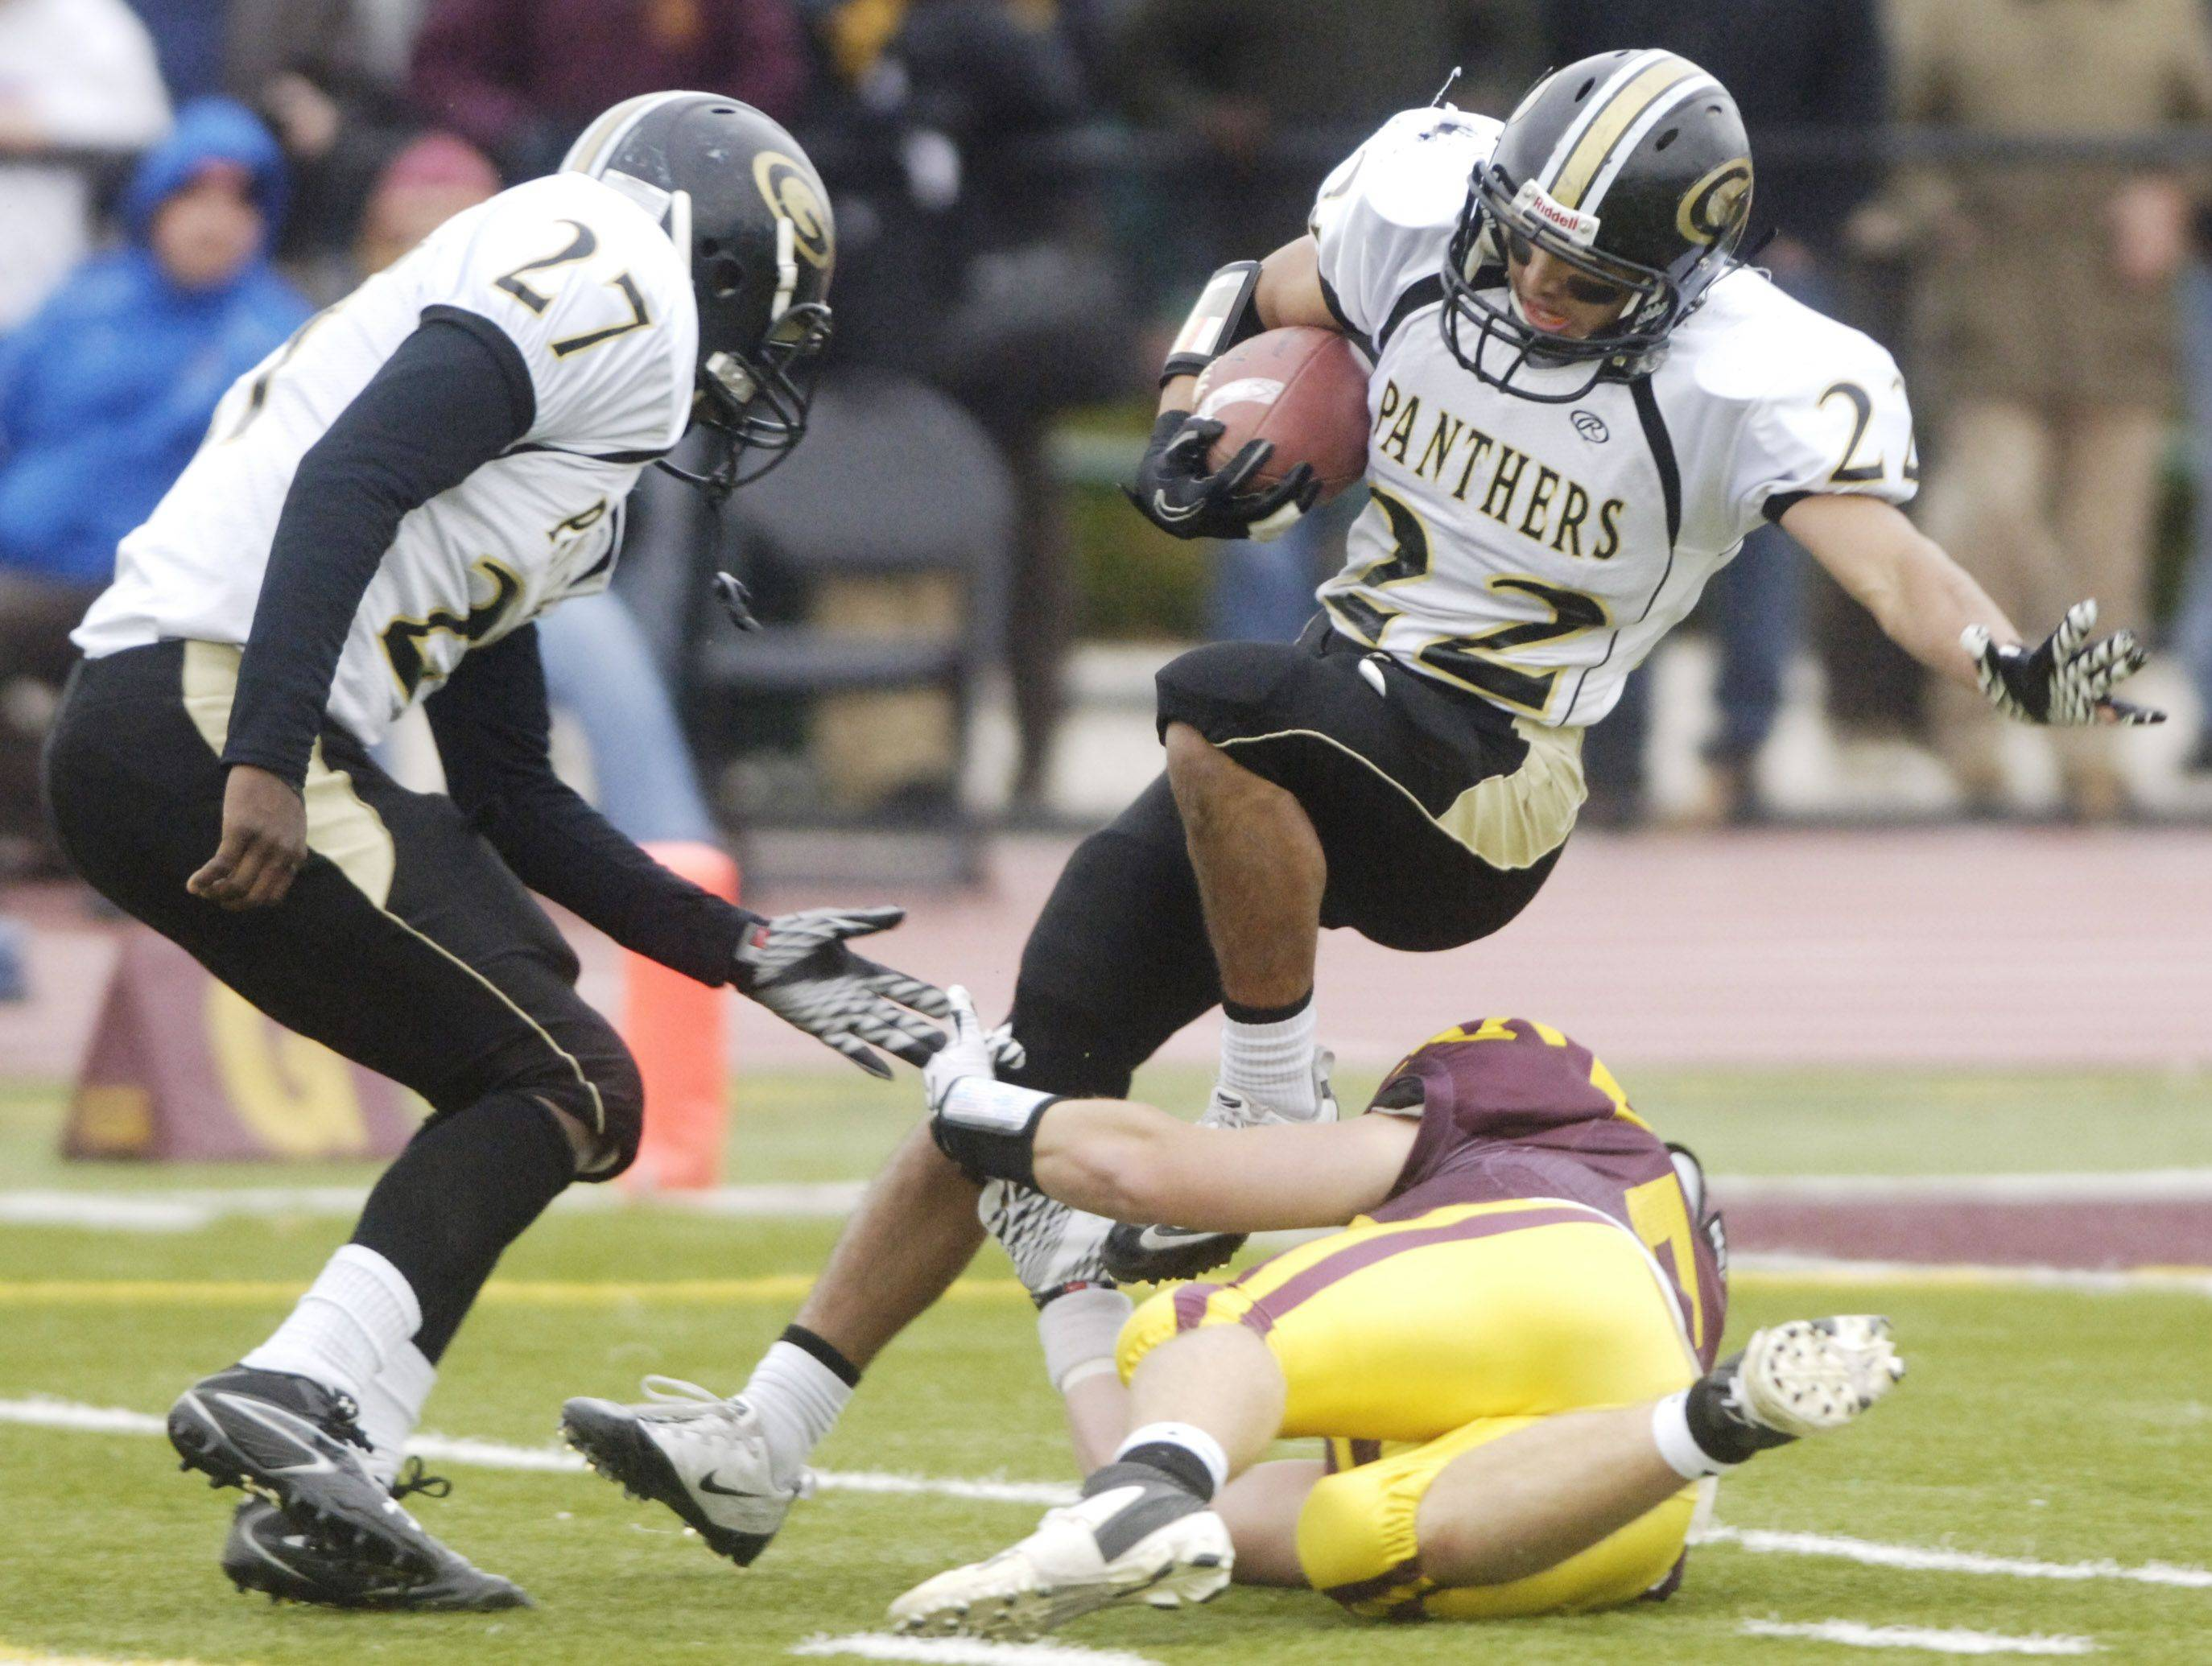 Glenbard North's Mario Rodriguez is tackled during Saturday's loss to Loyola Academy. Kendall Holbert of Glenbard North is the player at left.